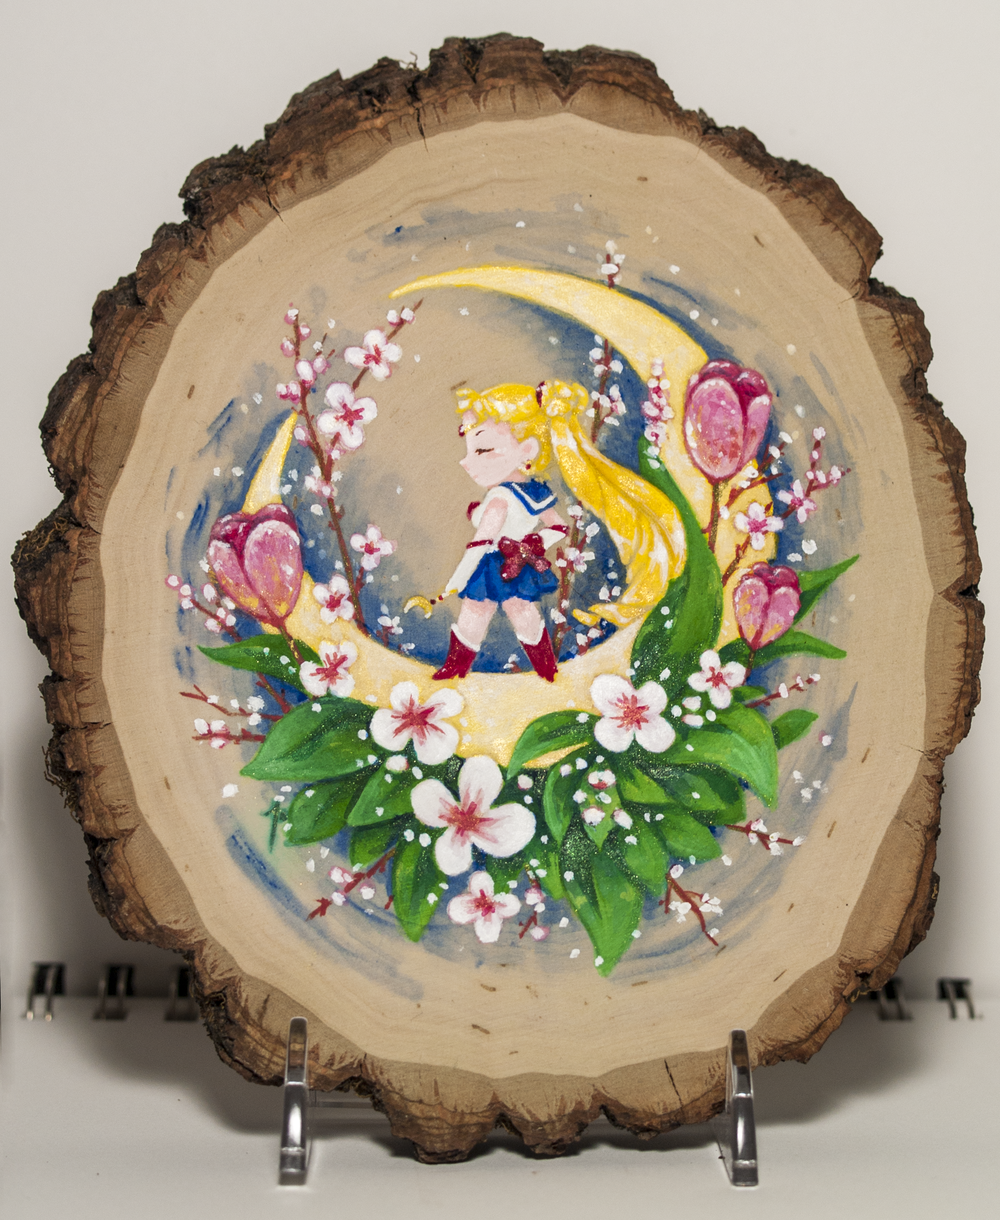 MOON PRISM POWER Gallery Show  This is my piece for the   MoonPrismPower   show, a Sailor Moon themed art show, hosted by  The Galallery  in San Francisco, running from December 9th 2016 to January 29th 2017.   Acrylic on Basswood.